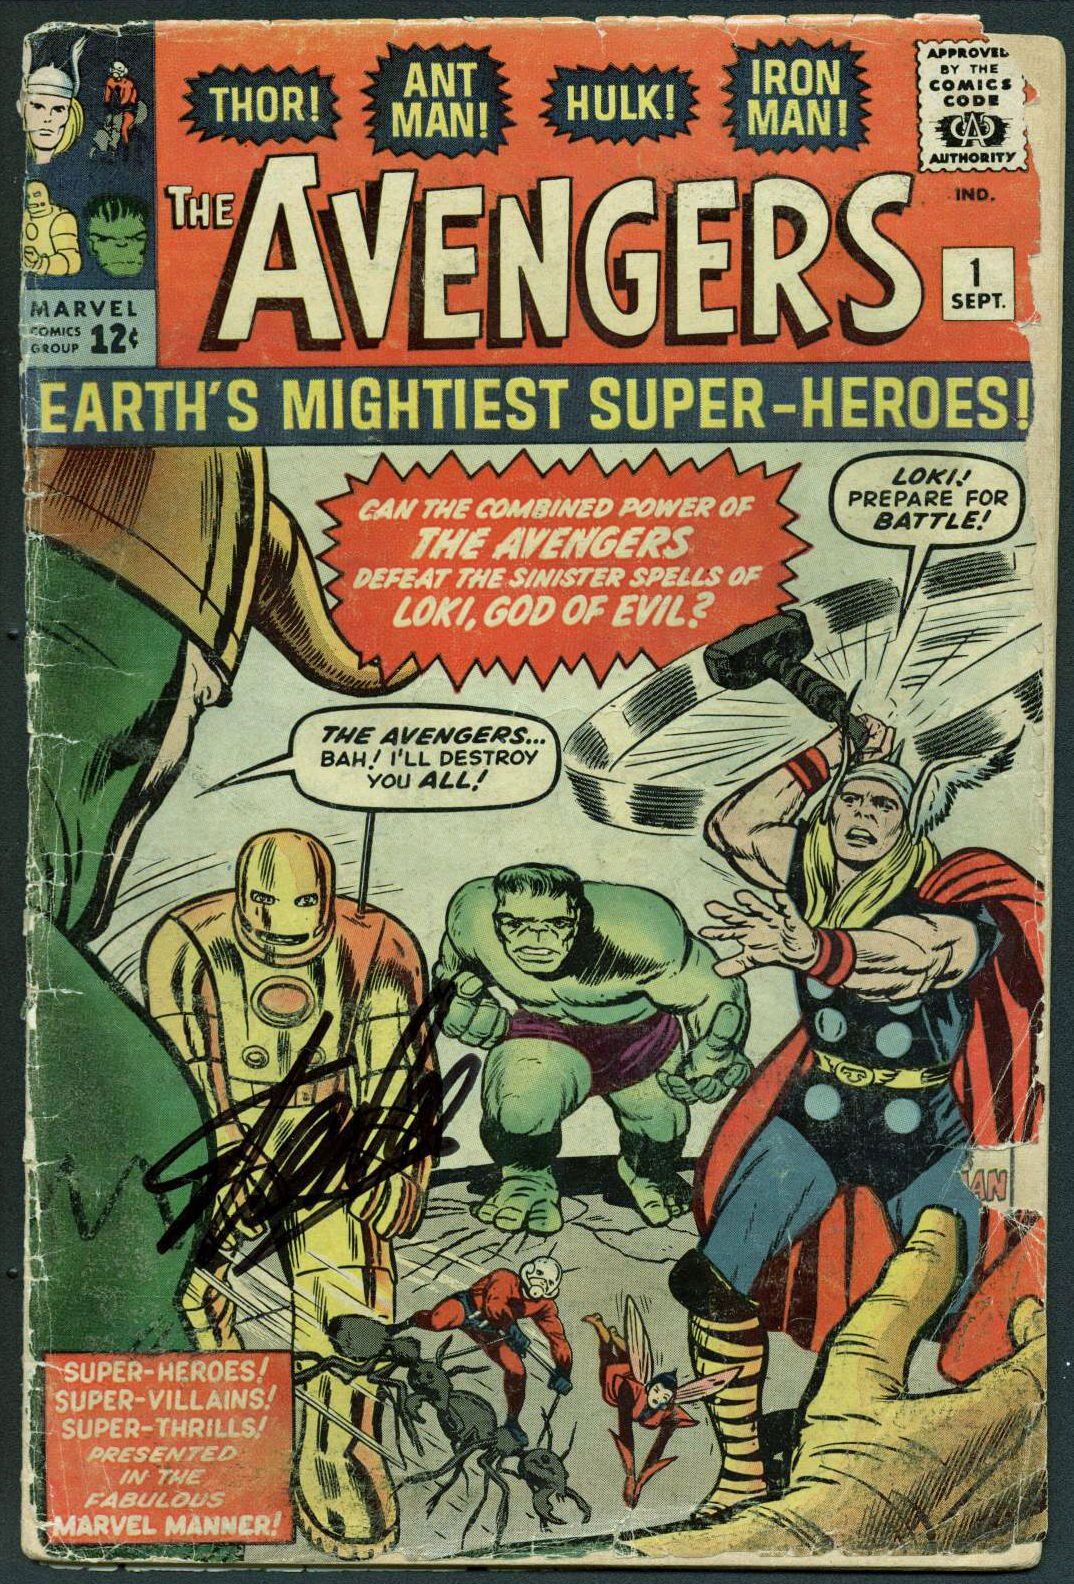 Stan Lee Authentic Signed The Avengers #1 Comic Book (1963) PSA/DNA #Z04187